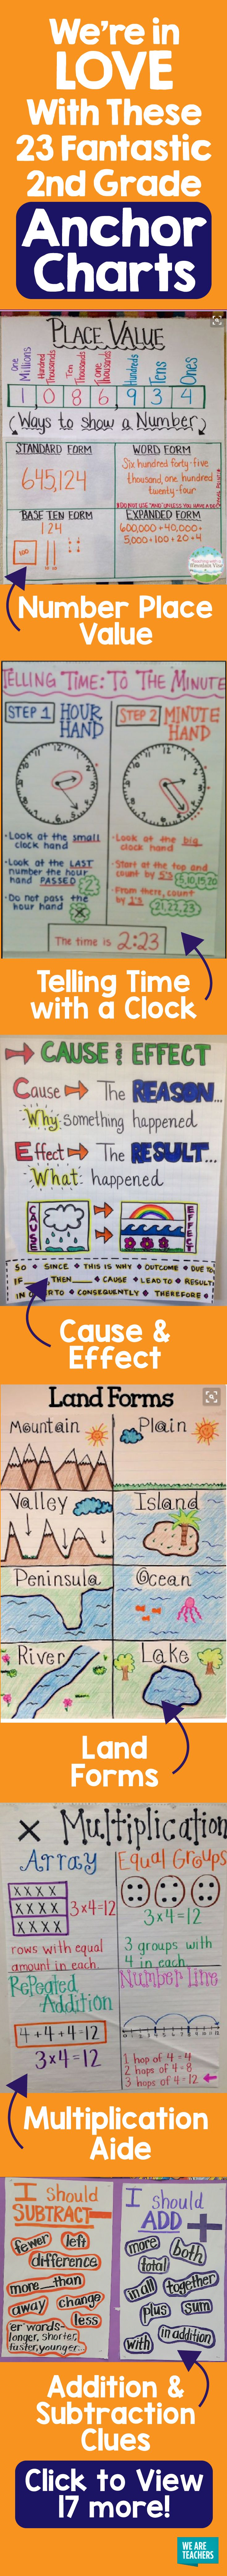 We're in Love With These 23 Fantastic 2nd Grade Anchor Charts